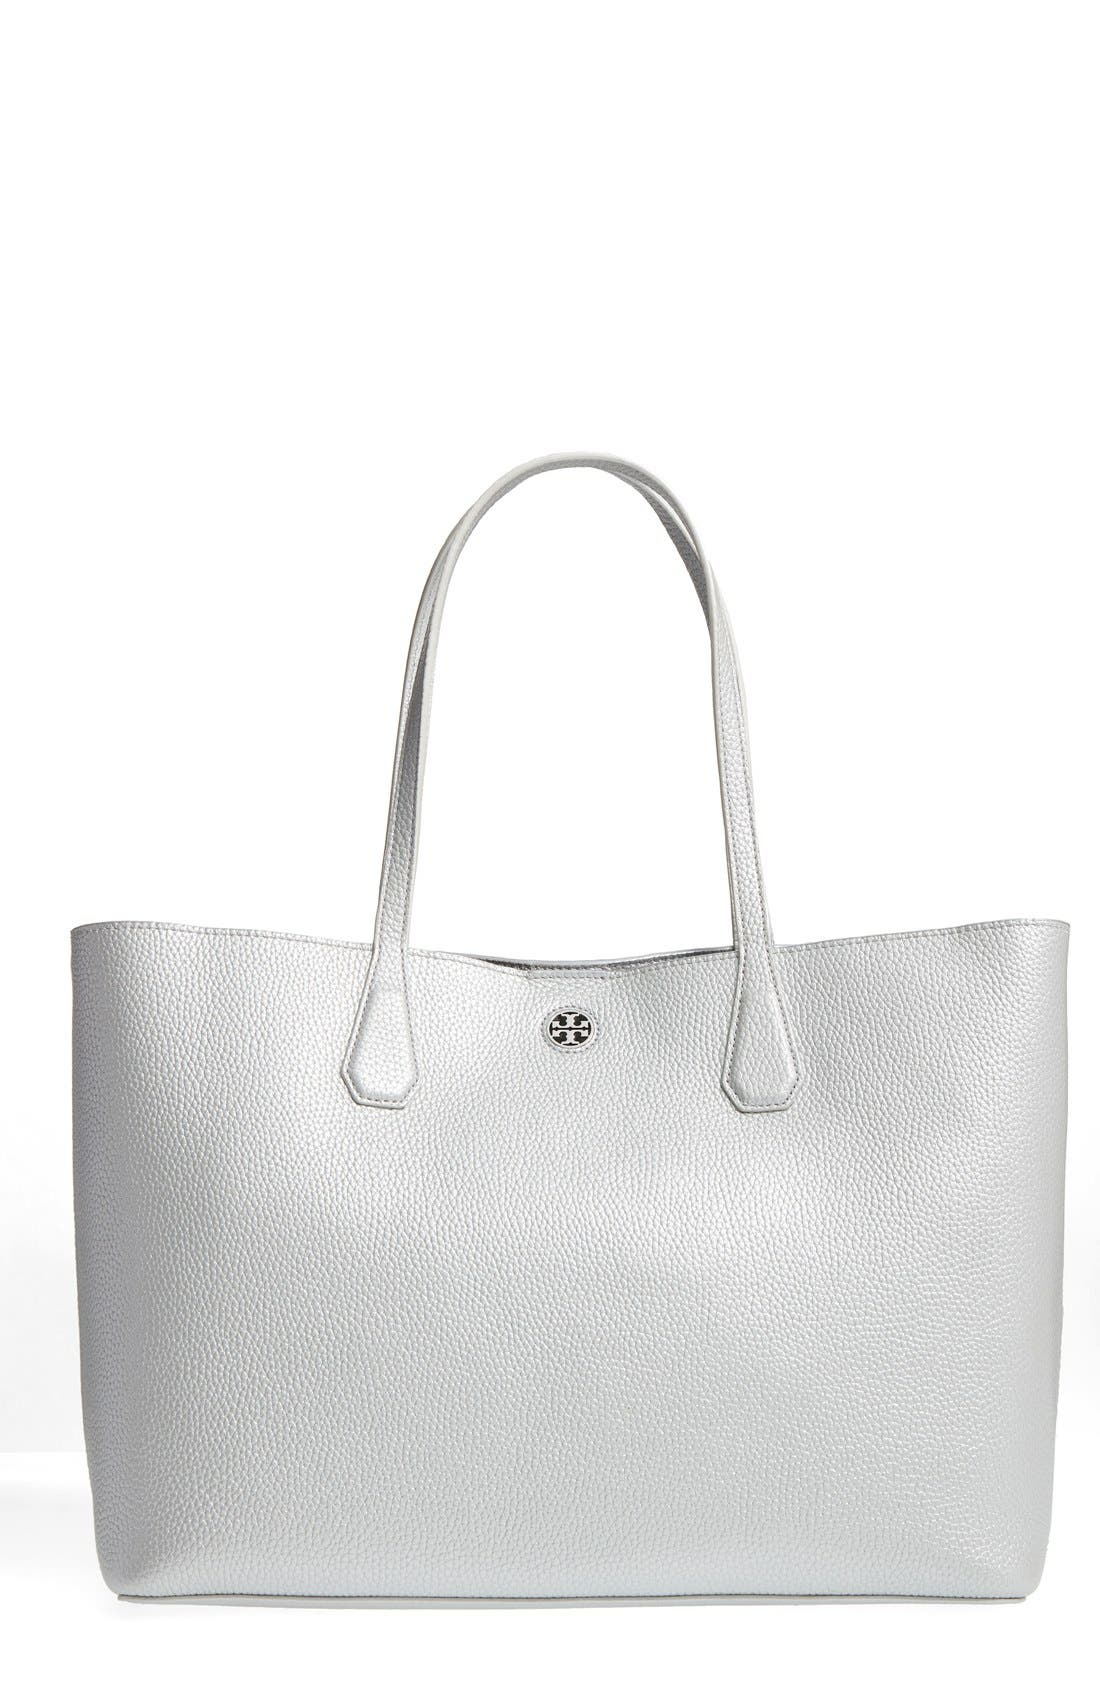 Alternate Image 1 Selected - Tory Burch Perry Leather Tote